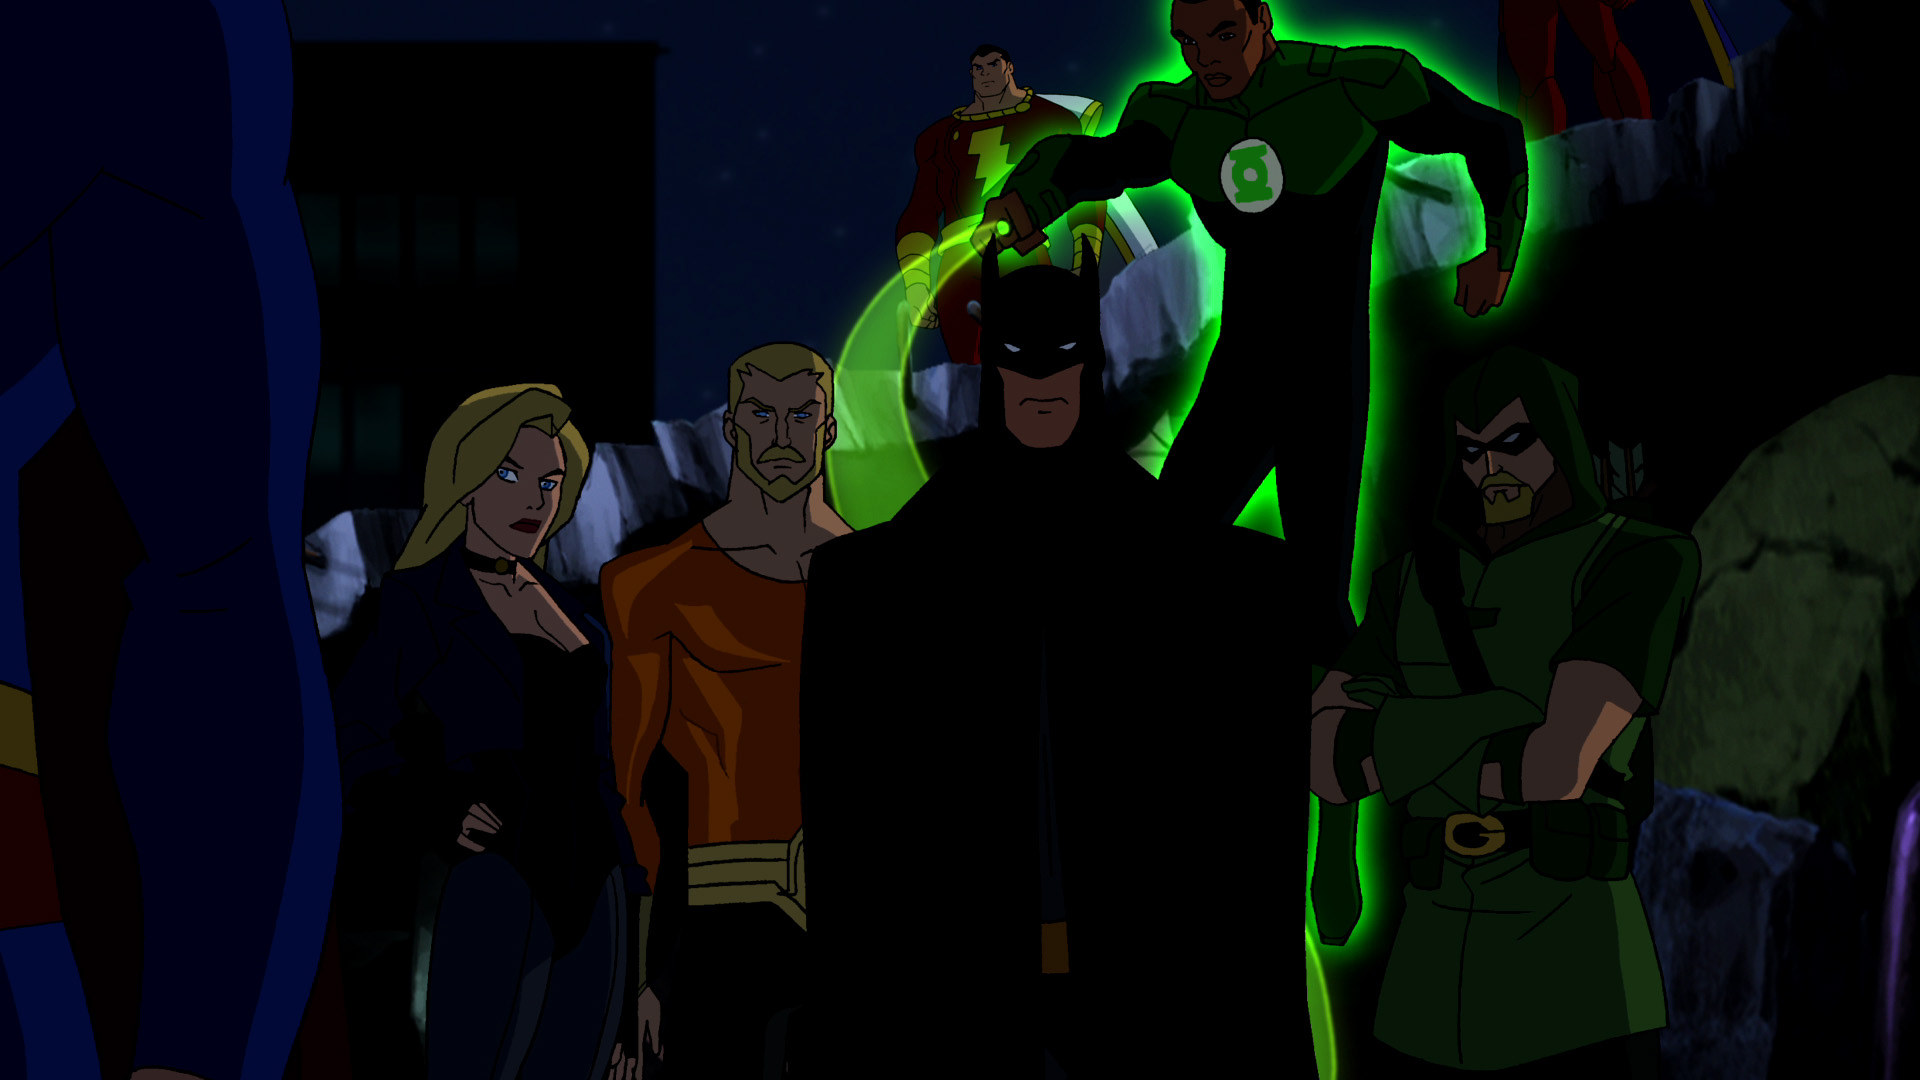 John Stewart Green Lantern Young Justice wallpaper   257531 1920x1080